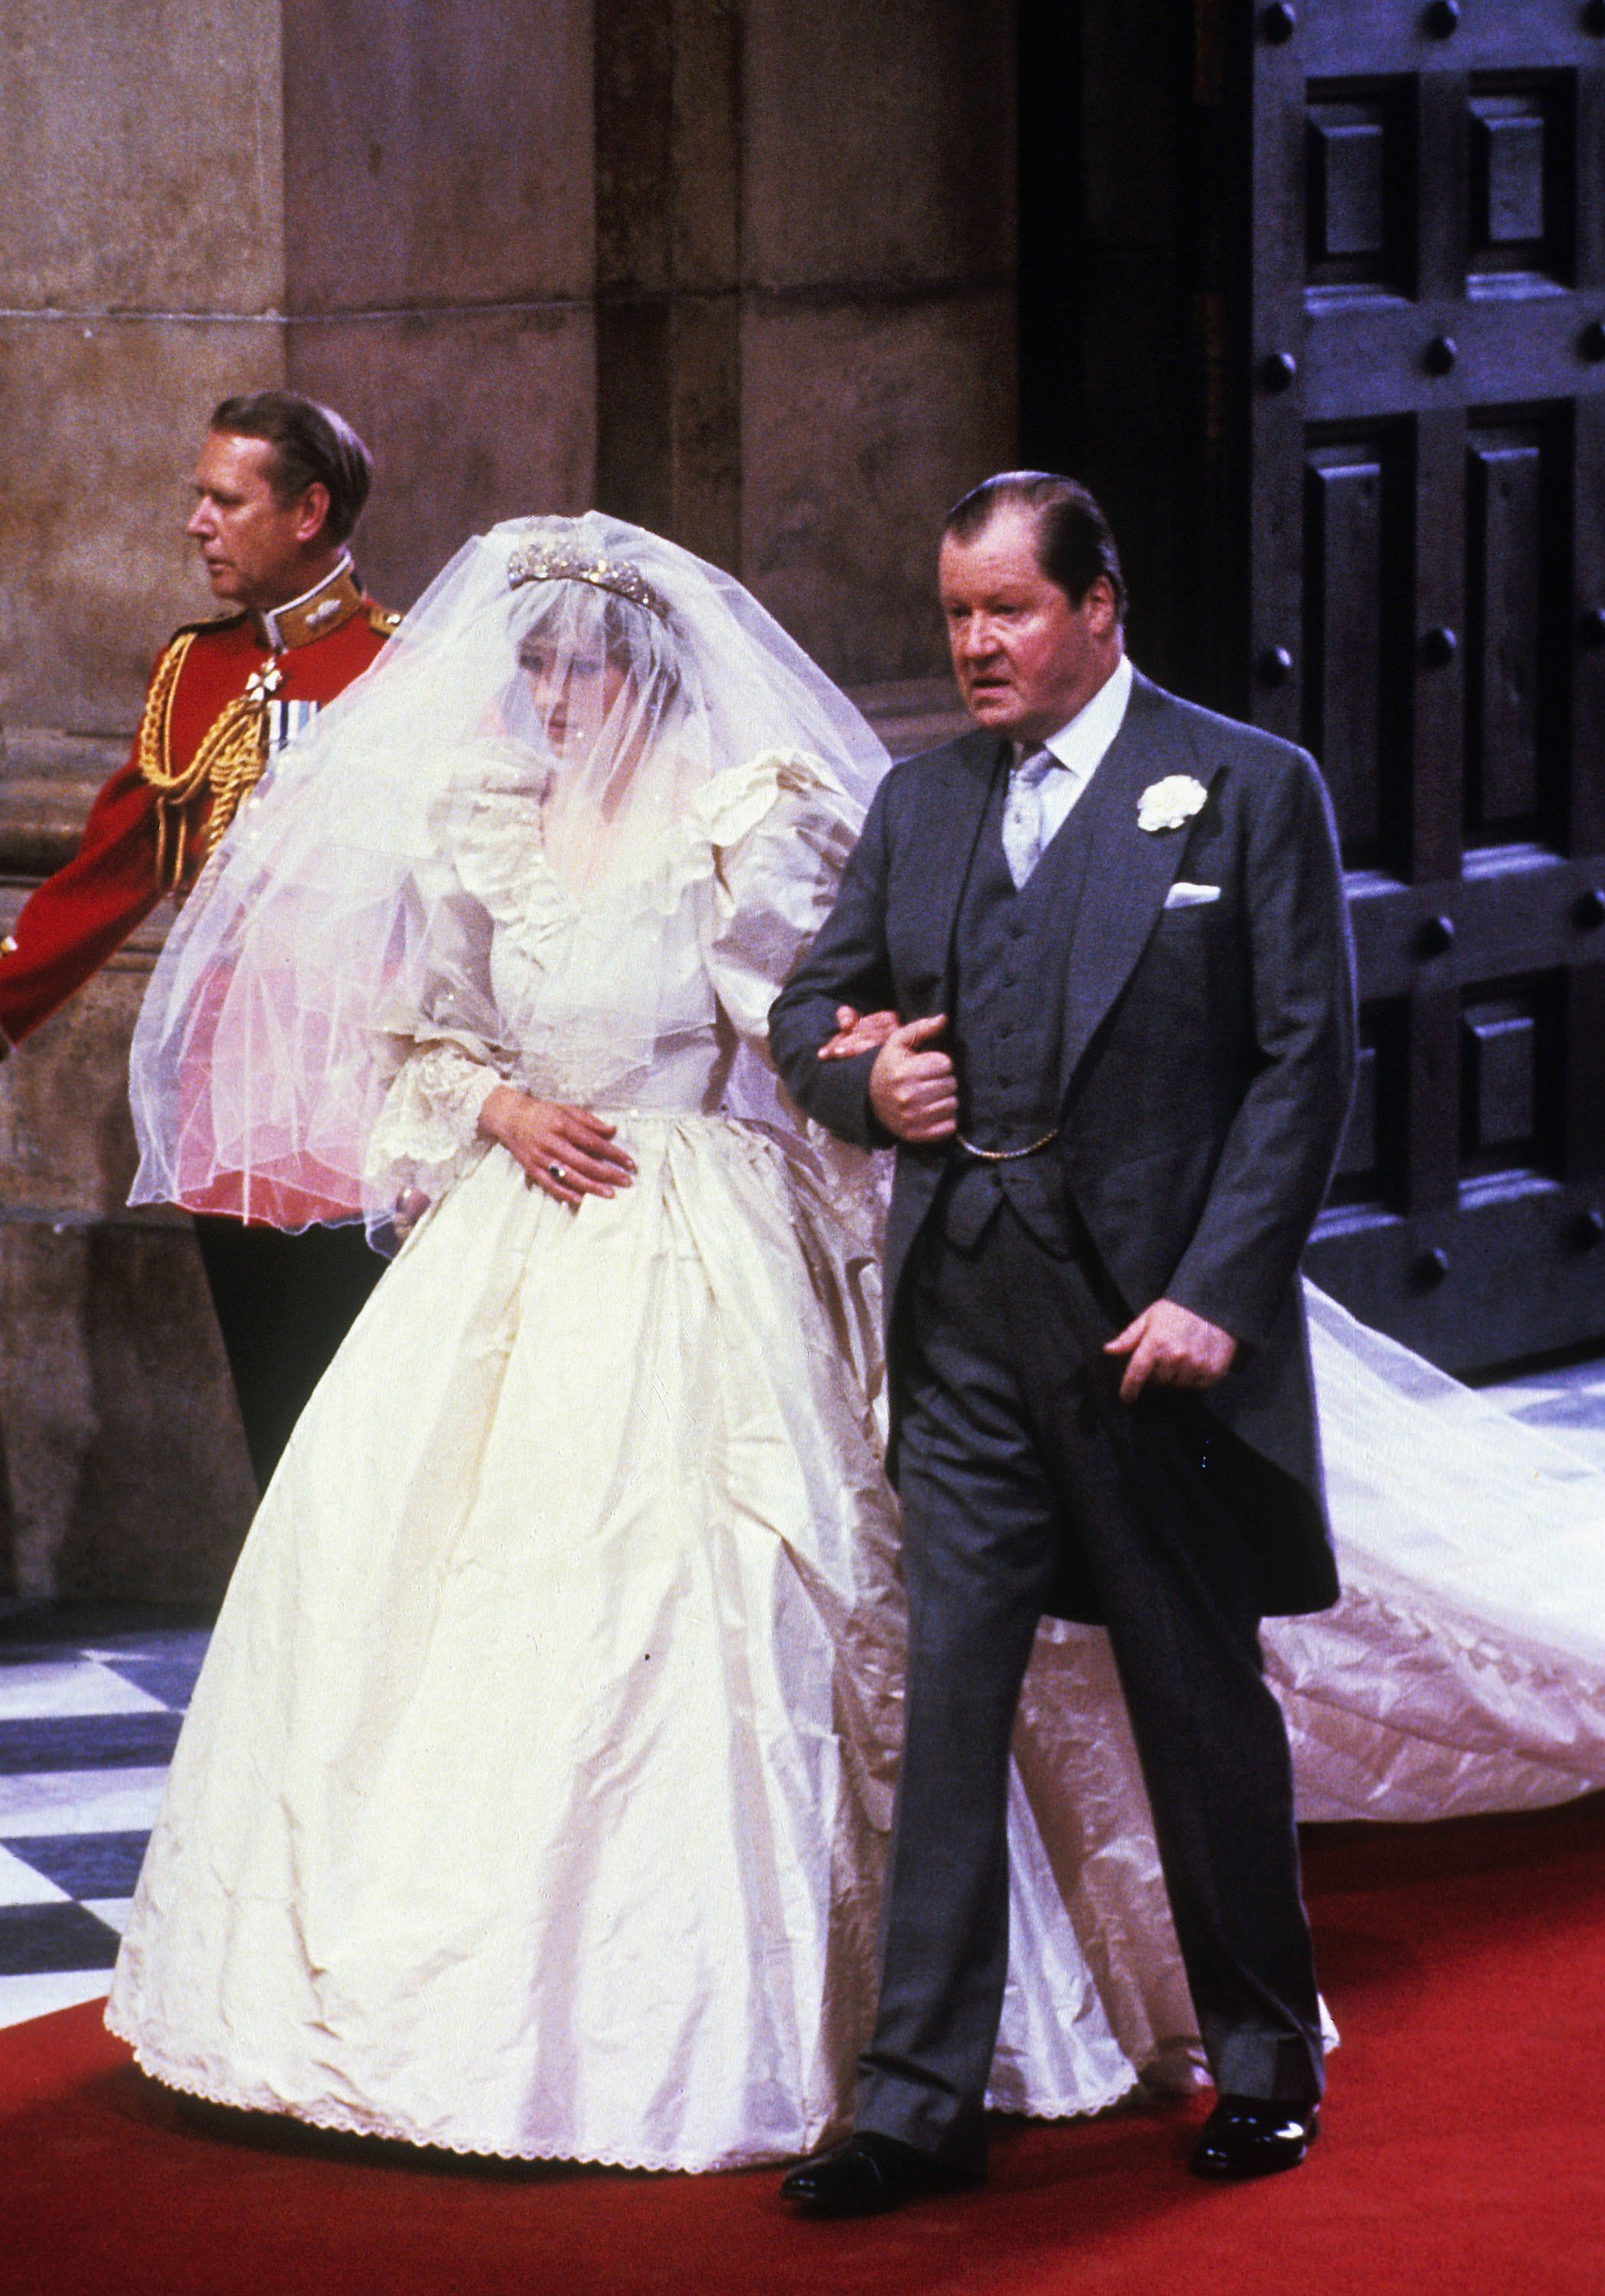 The Best Princess Diana Wedding Dresses